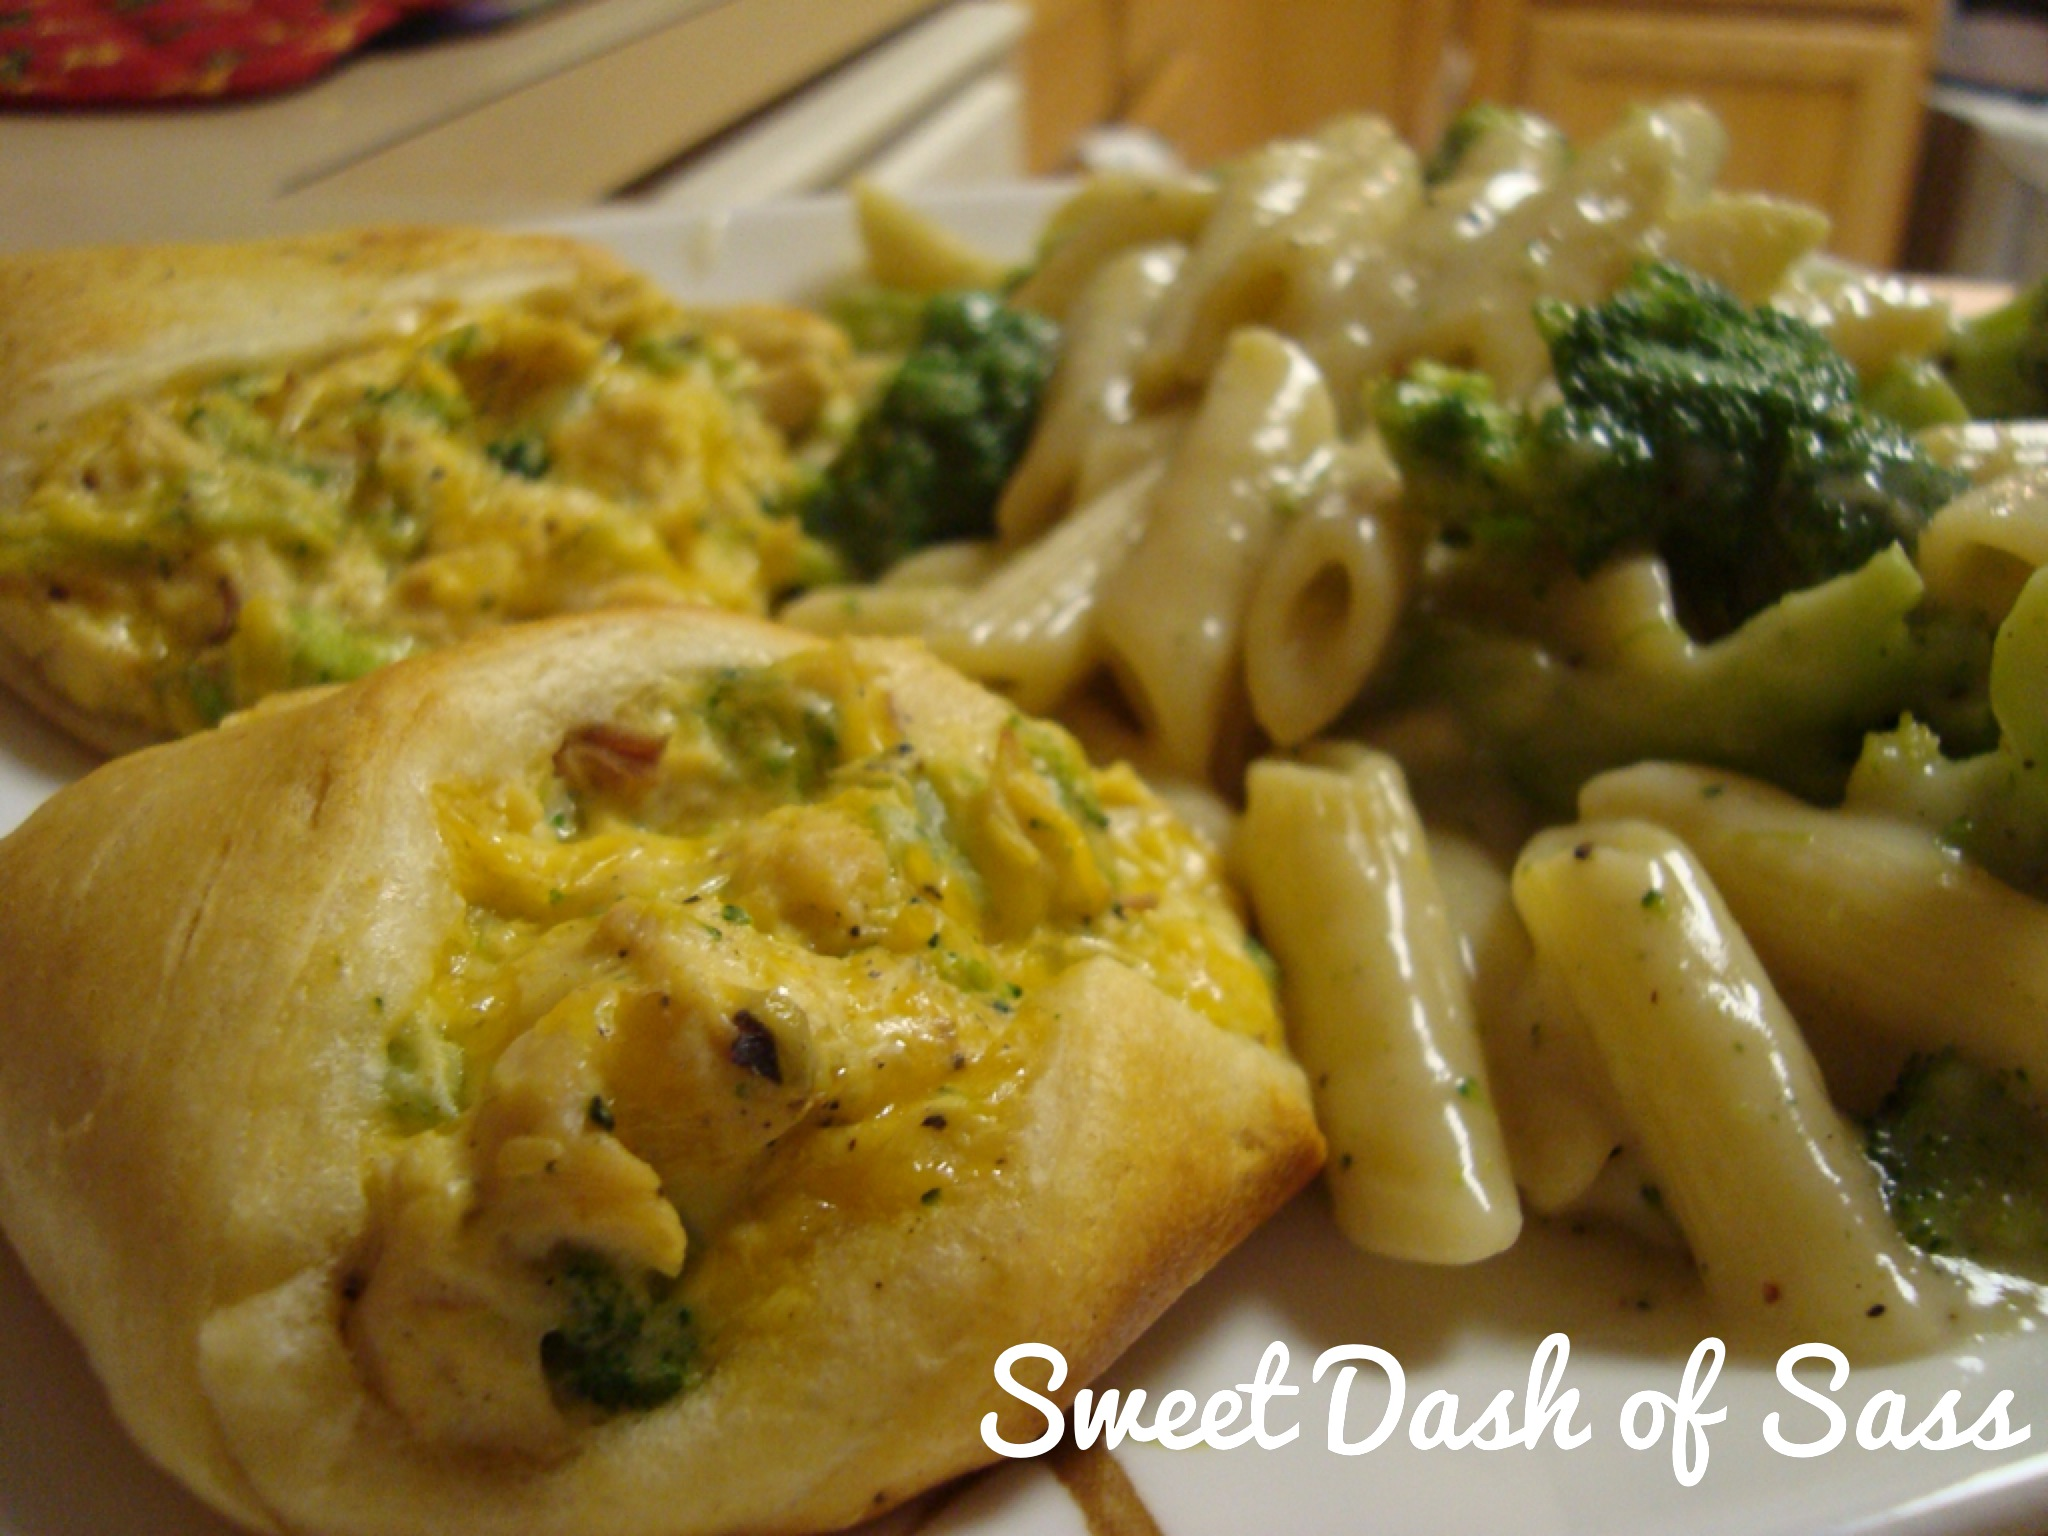 Chicken, Brocolli, and Cheese Pockets - www.SweetDashofSass.com  --  'LIKE' Sweet Dash of Sass on Facebook to check out this recipe and many more!